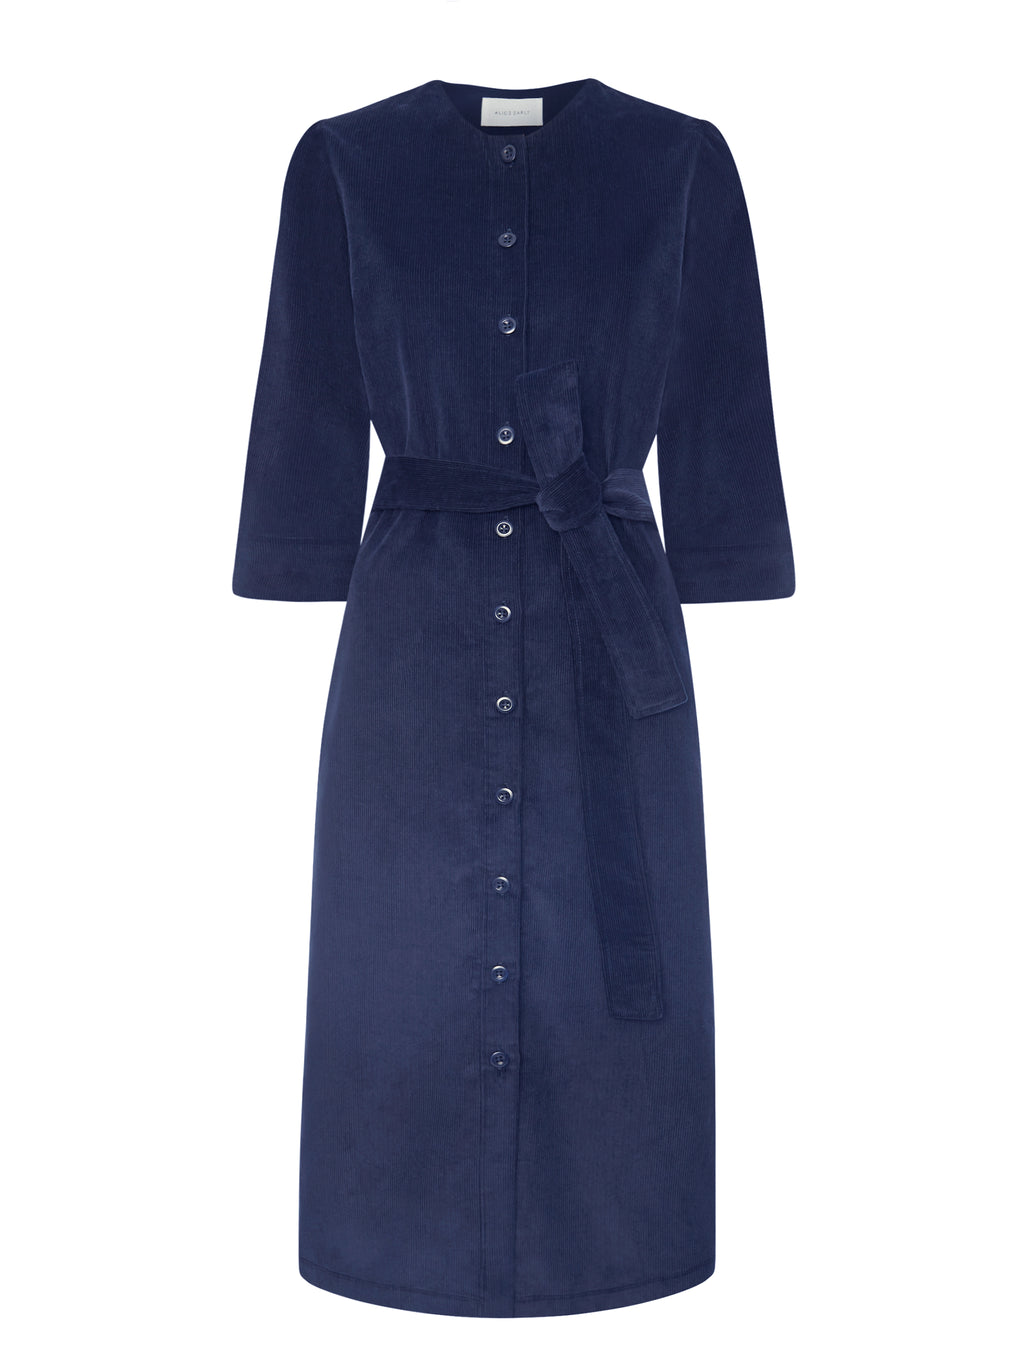 Rhianon Dress - Navy - Alice Early